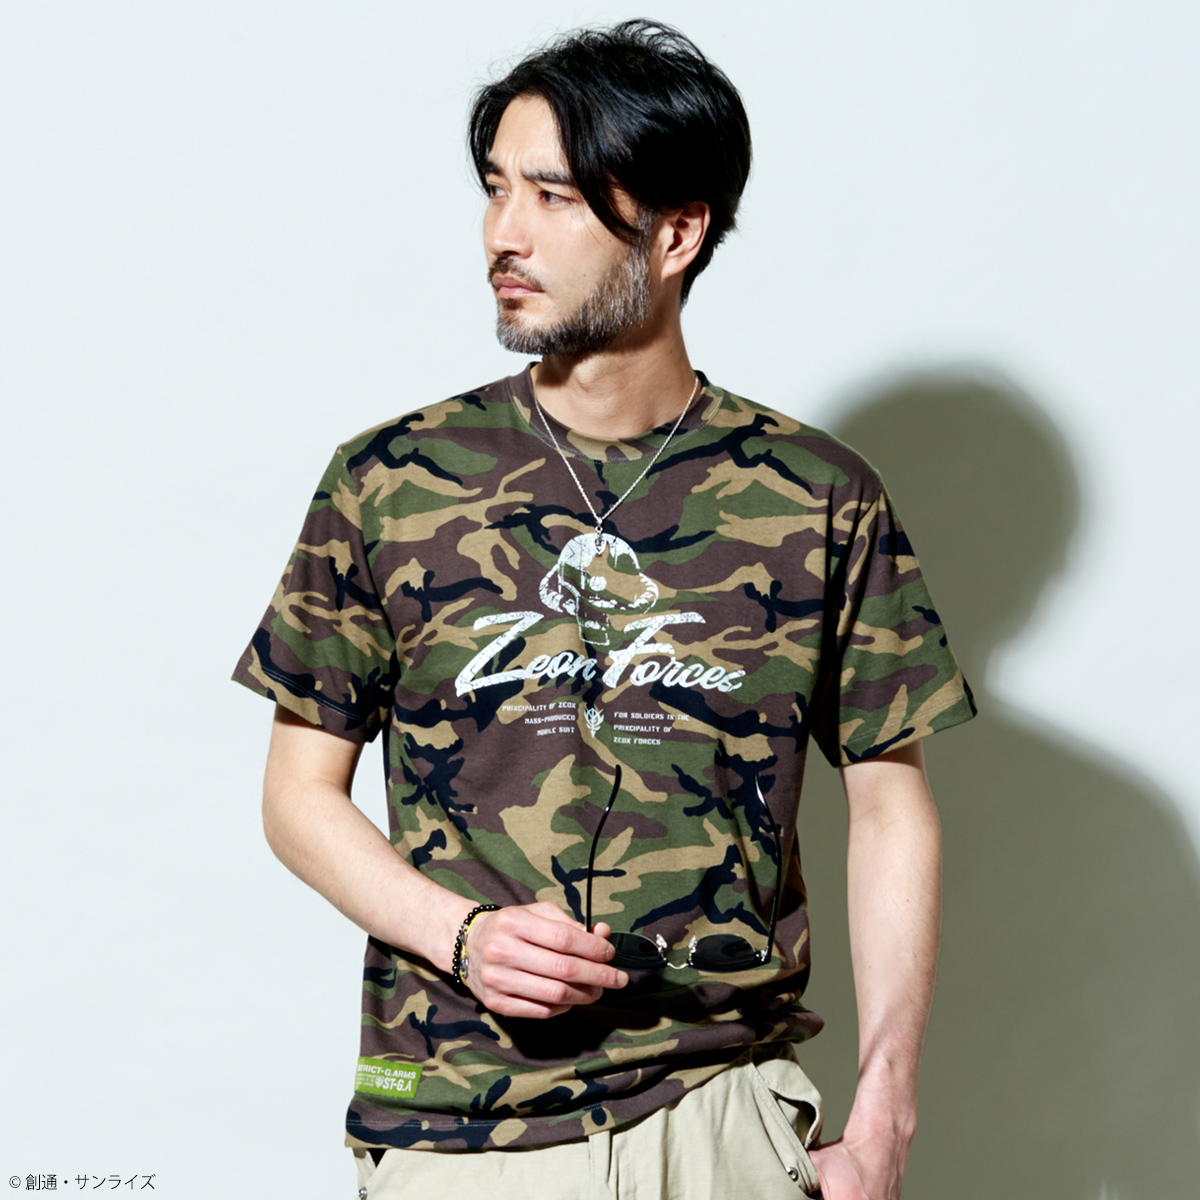 STRICT-G.ARMS『機動戦士ガンダム』 カモフラージュ総柄Tシャツ ZEON FORCES